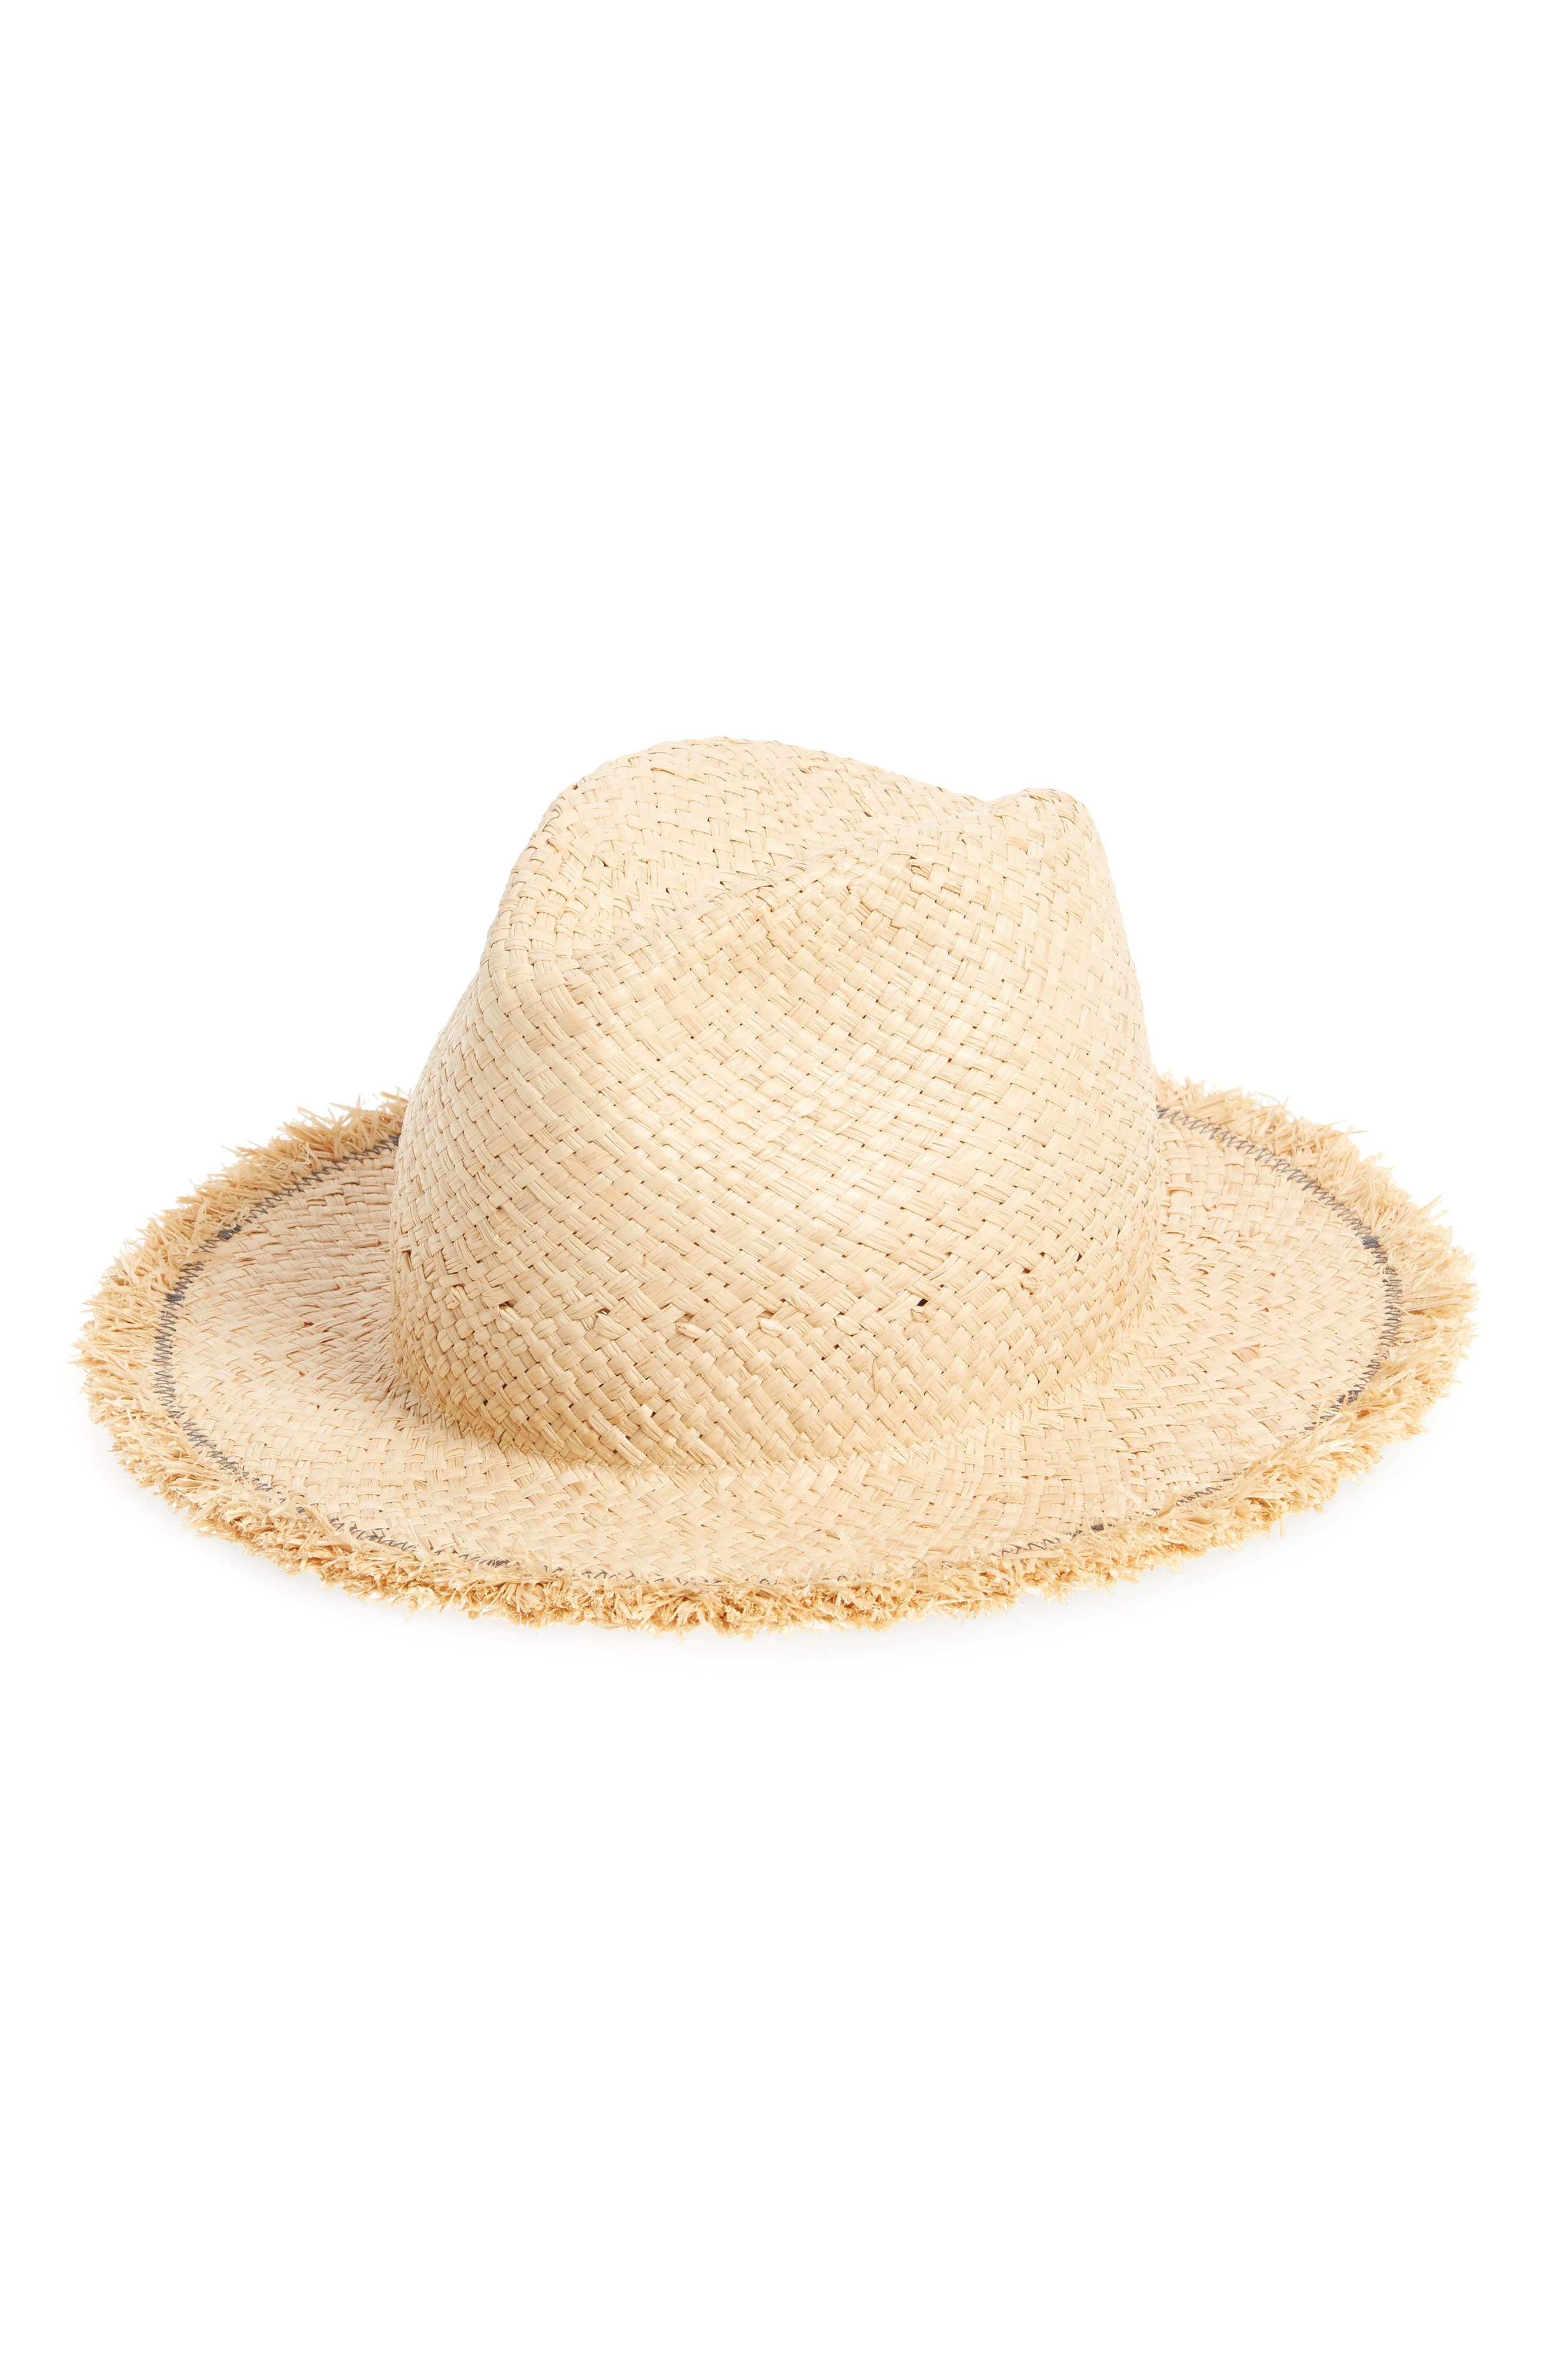 Dad's Straw Hat,                         Main,                         color, NATURAL